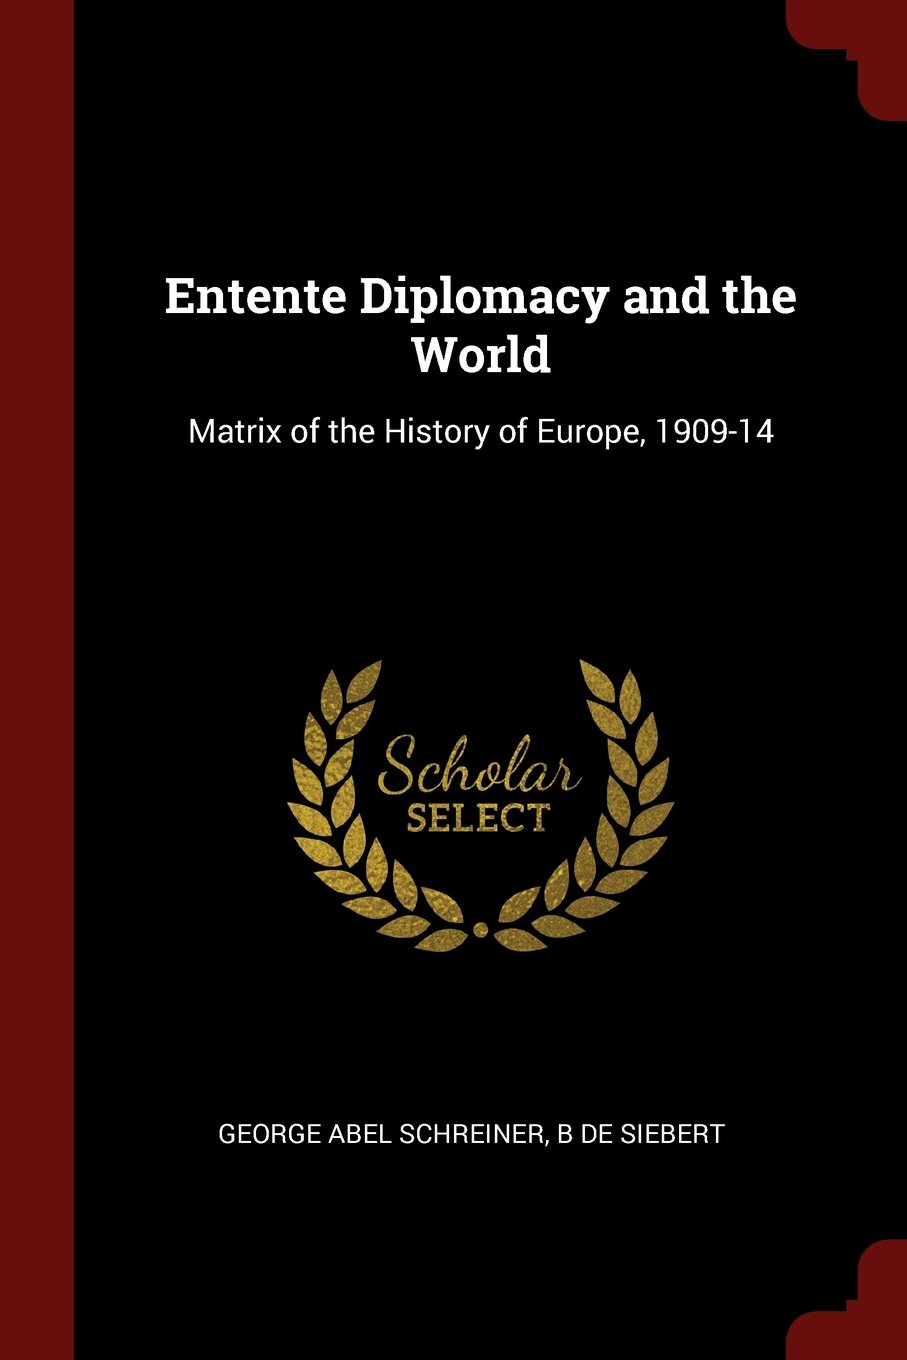 Download Entente Diplomacy and the World: Matrix of the History of Europe, 1909-14 ebook